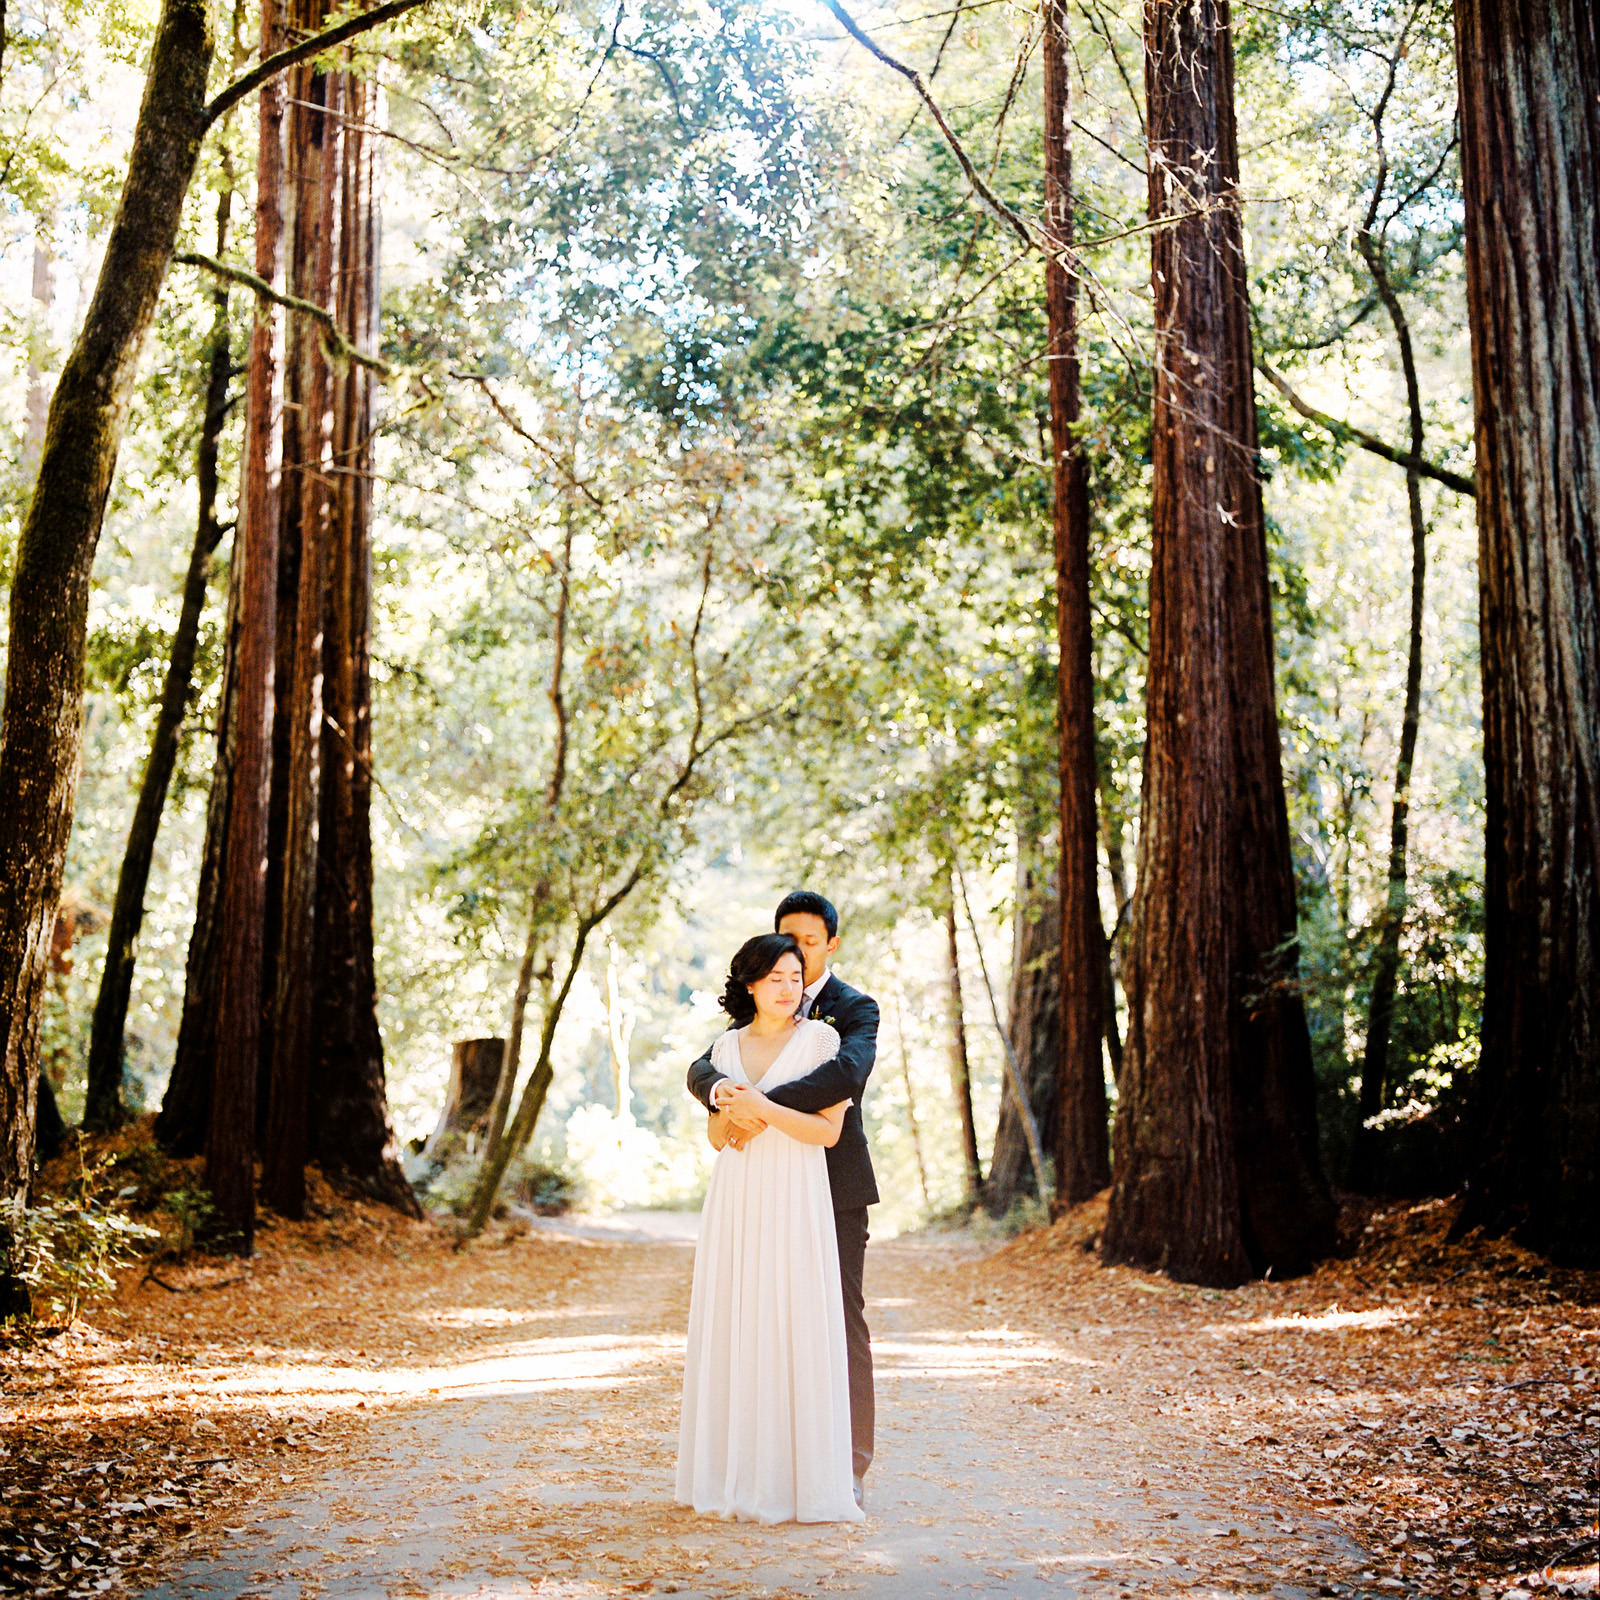 kimclay-blog-051 REDWOOD FOREST WEDDING